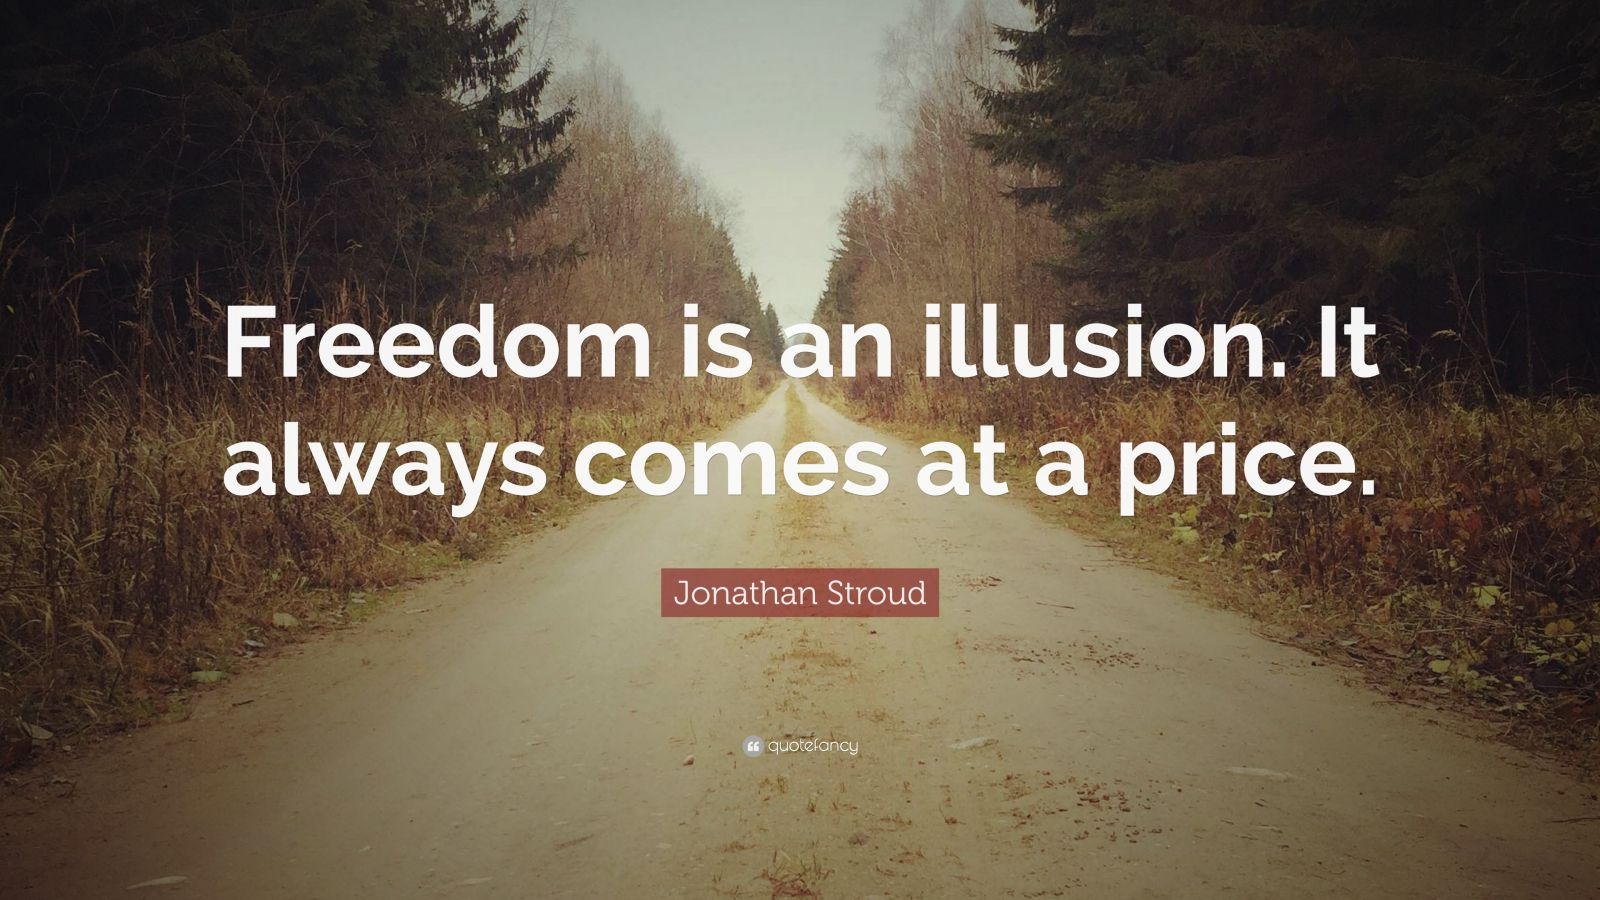 freedom is an illusion